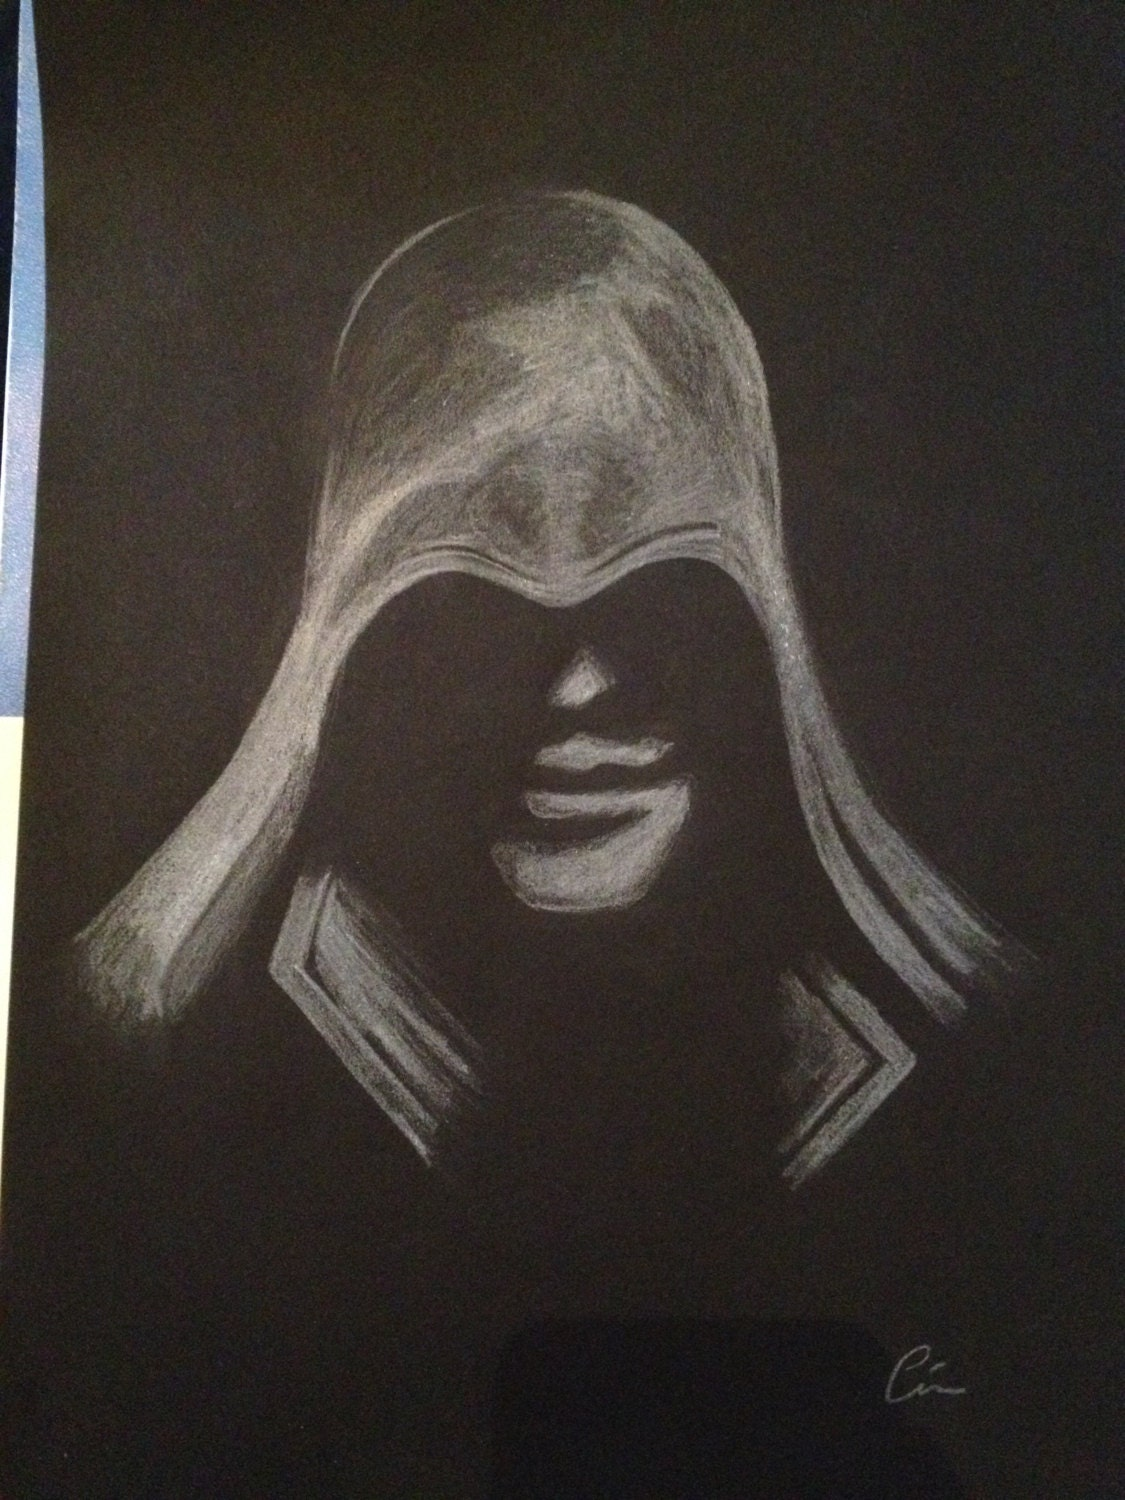 ezio assassin creed dessin blanc sur fond noir